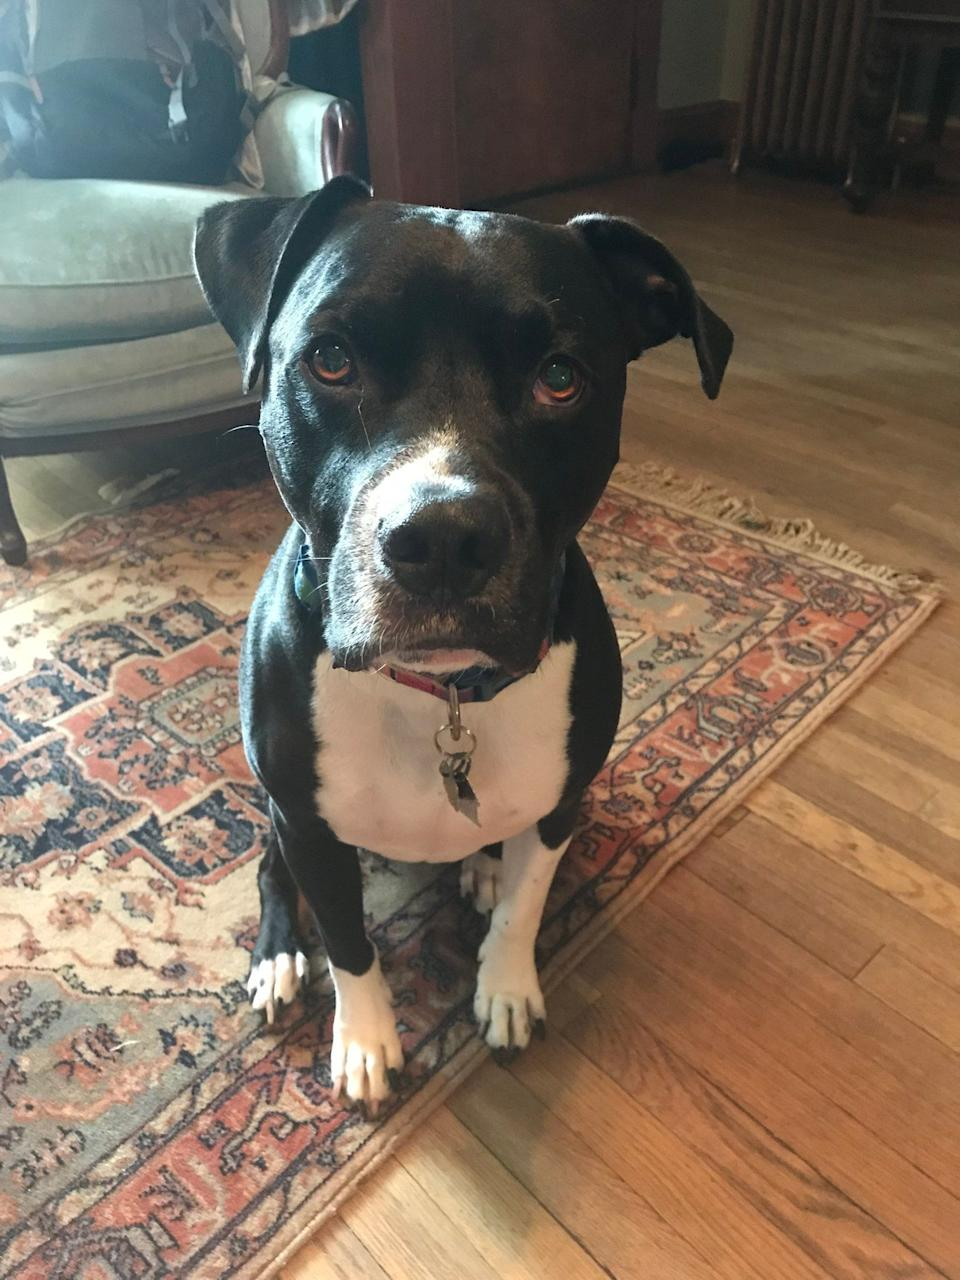 Gumbo is a 7.5 year old black and white pitbull-boxer mix. He went missing over Memorial Day weekend in Atlanta. (Credit: Michael Tyler)